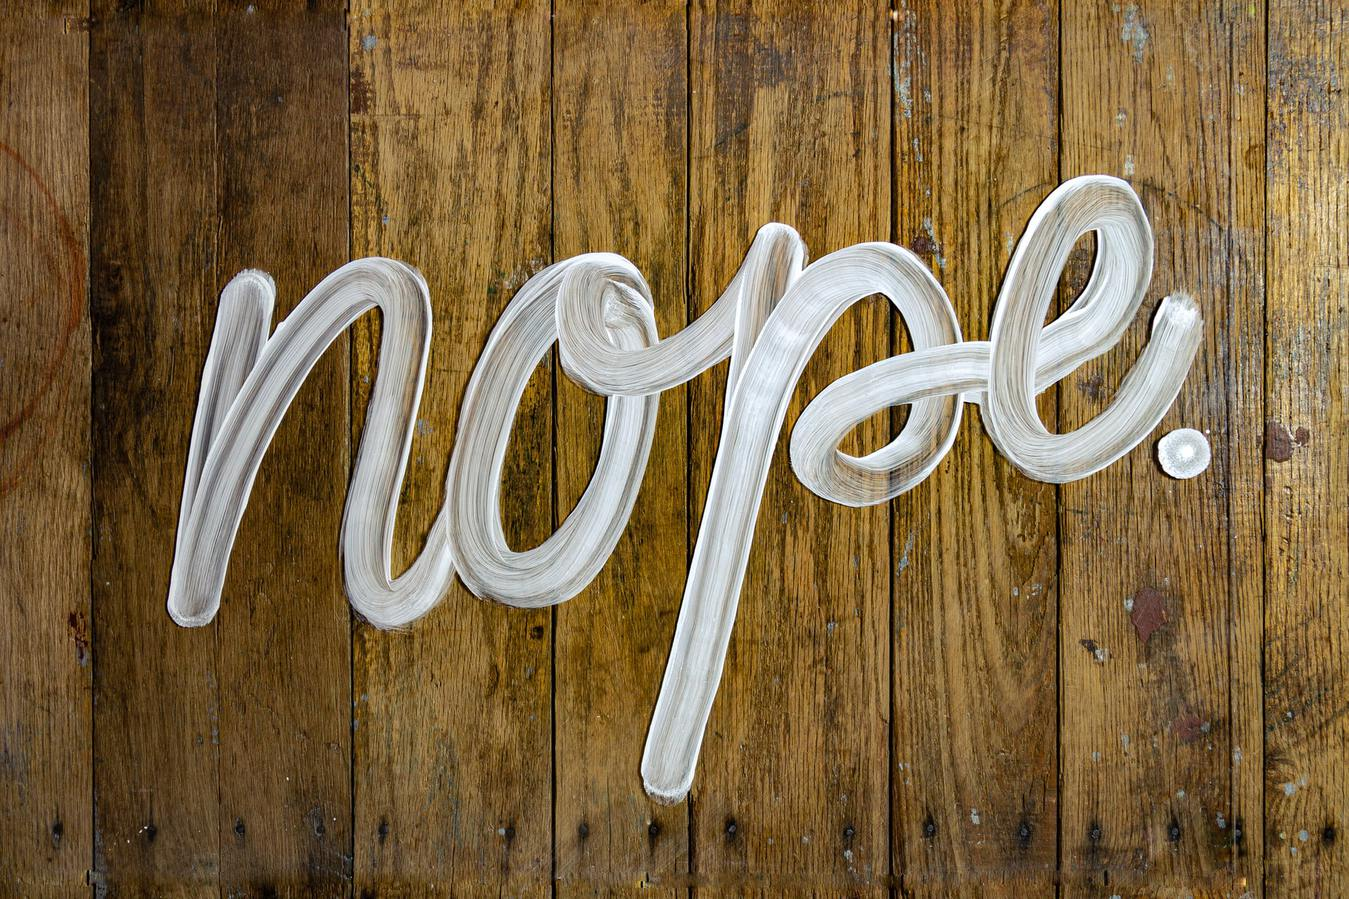 Nope spelled out against a wooden background